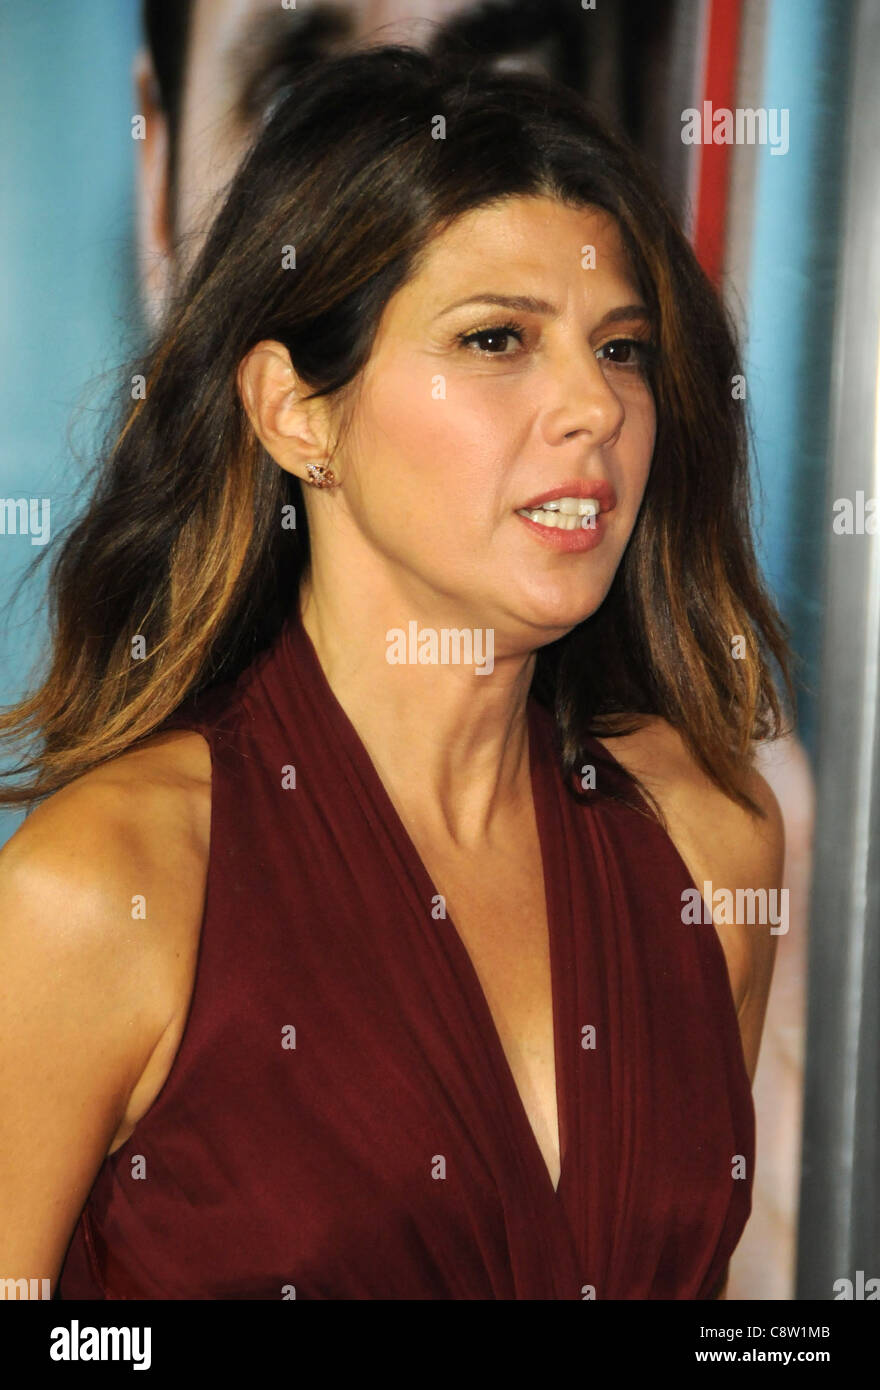 Marisa Tomei at arrivals for THE IDES OF MARCH Screening, Samuel Goldwyn Theater at AMPAS, Los Angeles, CA September - Stock Image